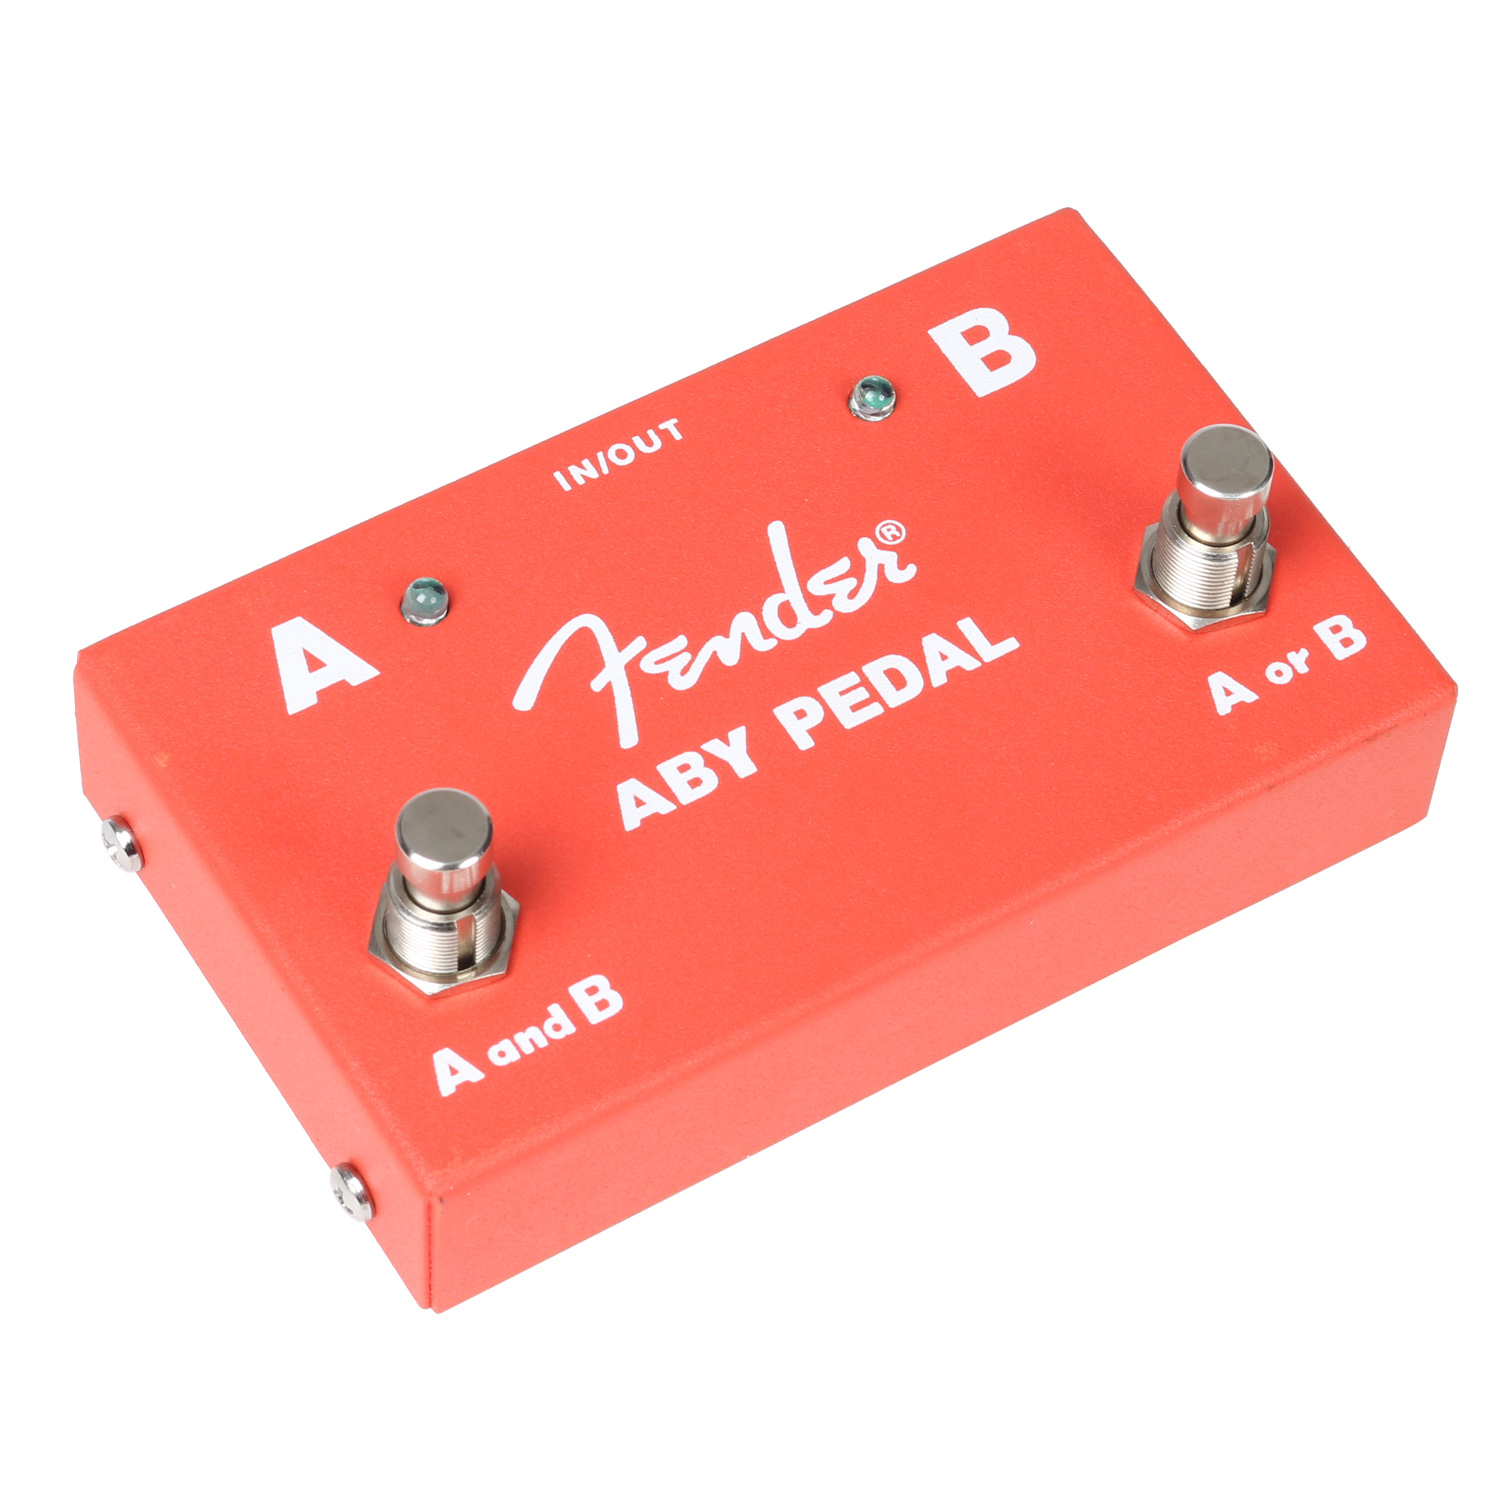 Fender 2 Switch ABY Pedal Passiv Switch